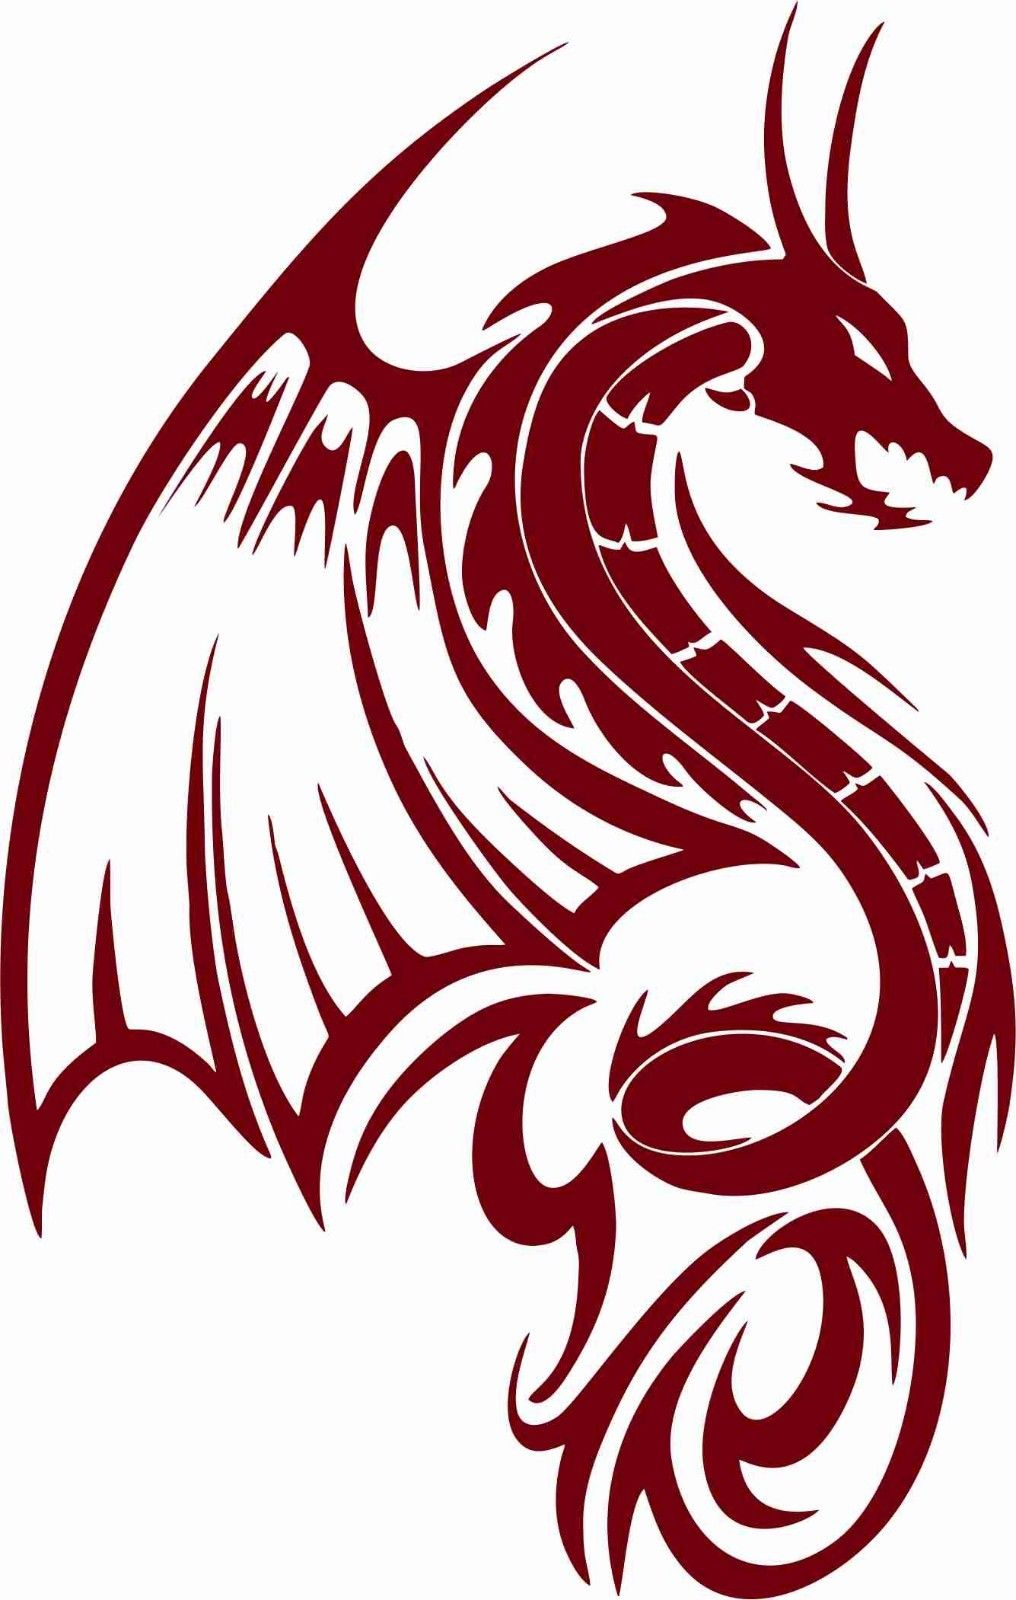 "Dragon Fantasy Mystical Creature Wings Car Truck Window Vinyl Decal Sticker - 11"" Long Edge"